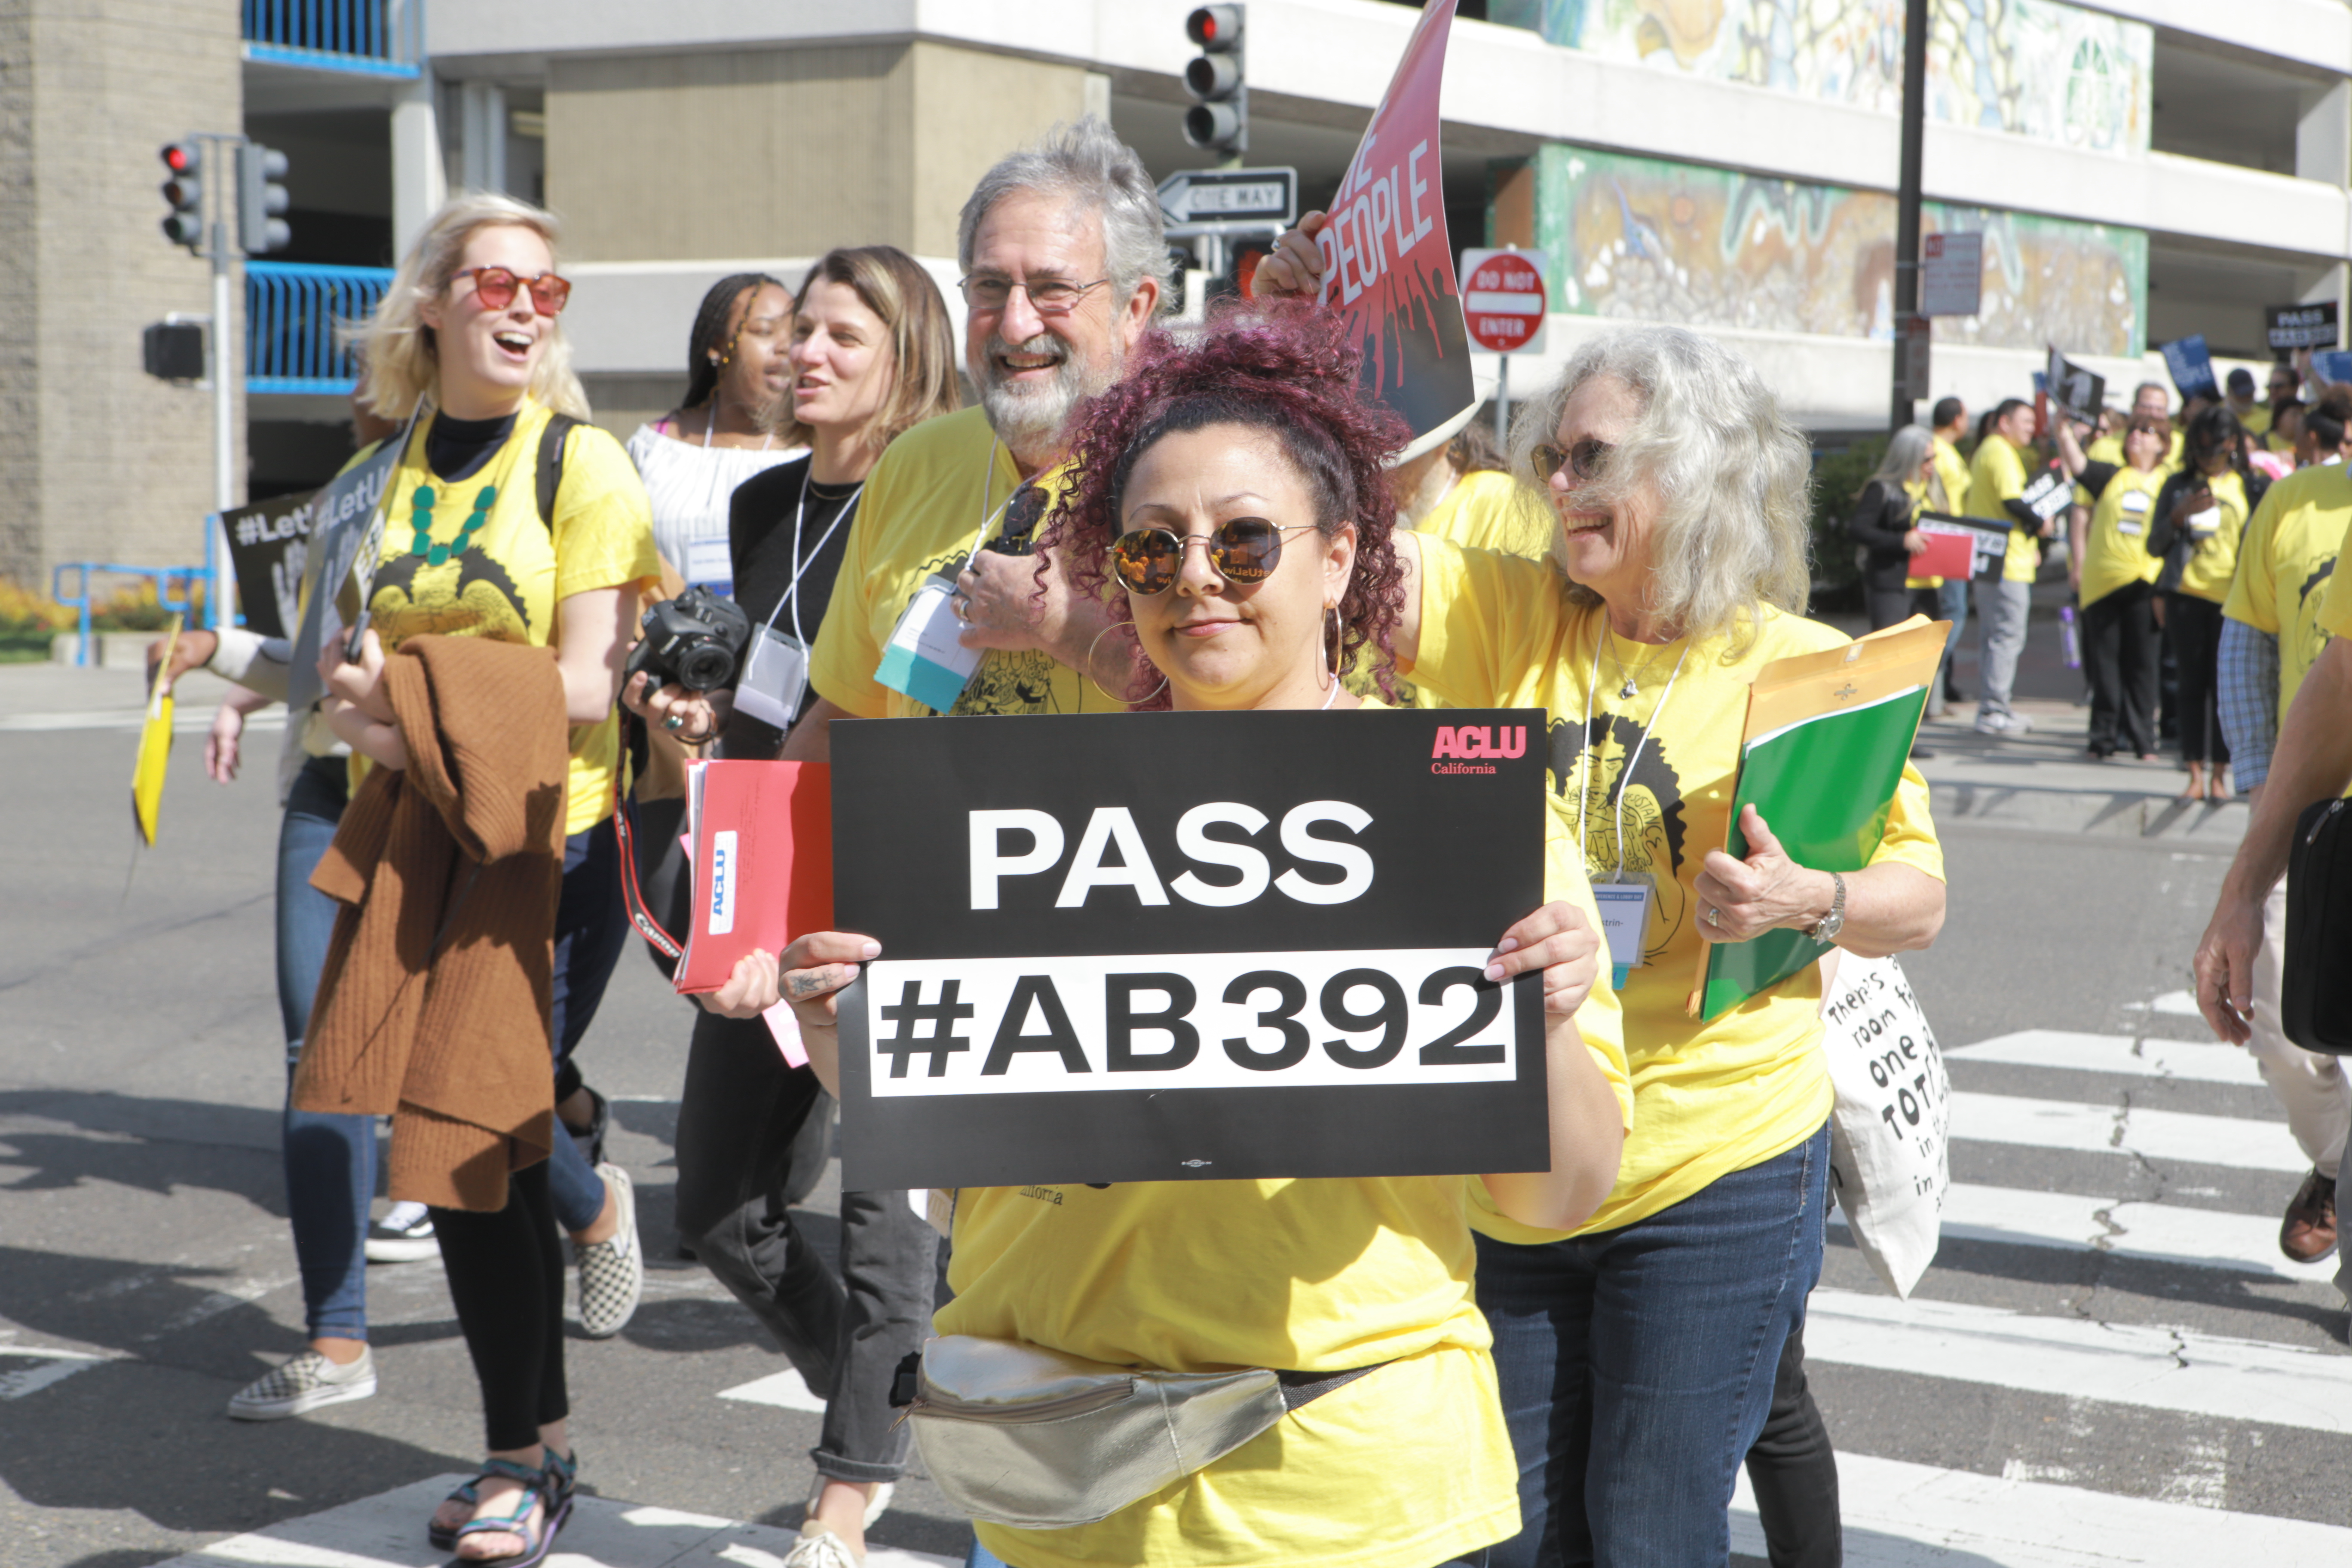 Activist holding Pass AB 392 sign